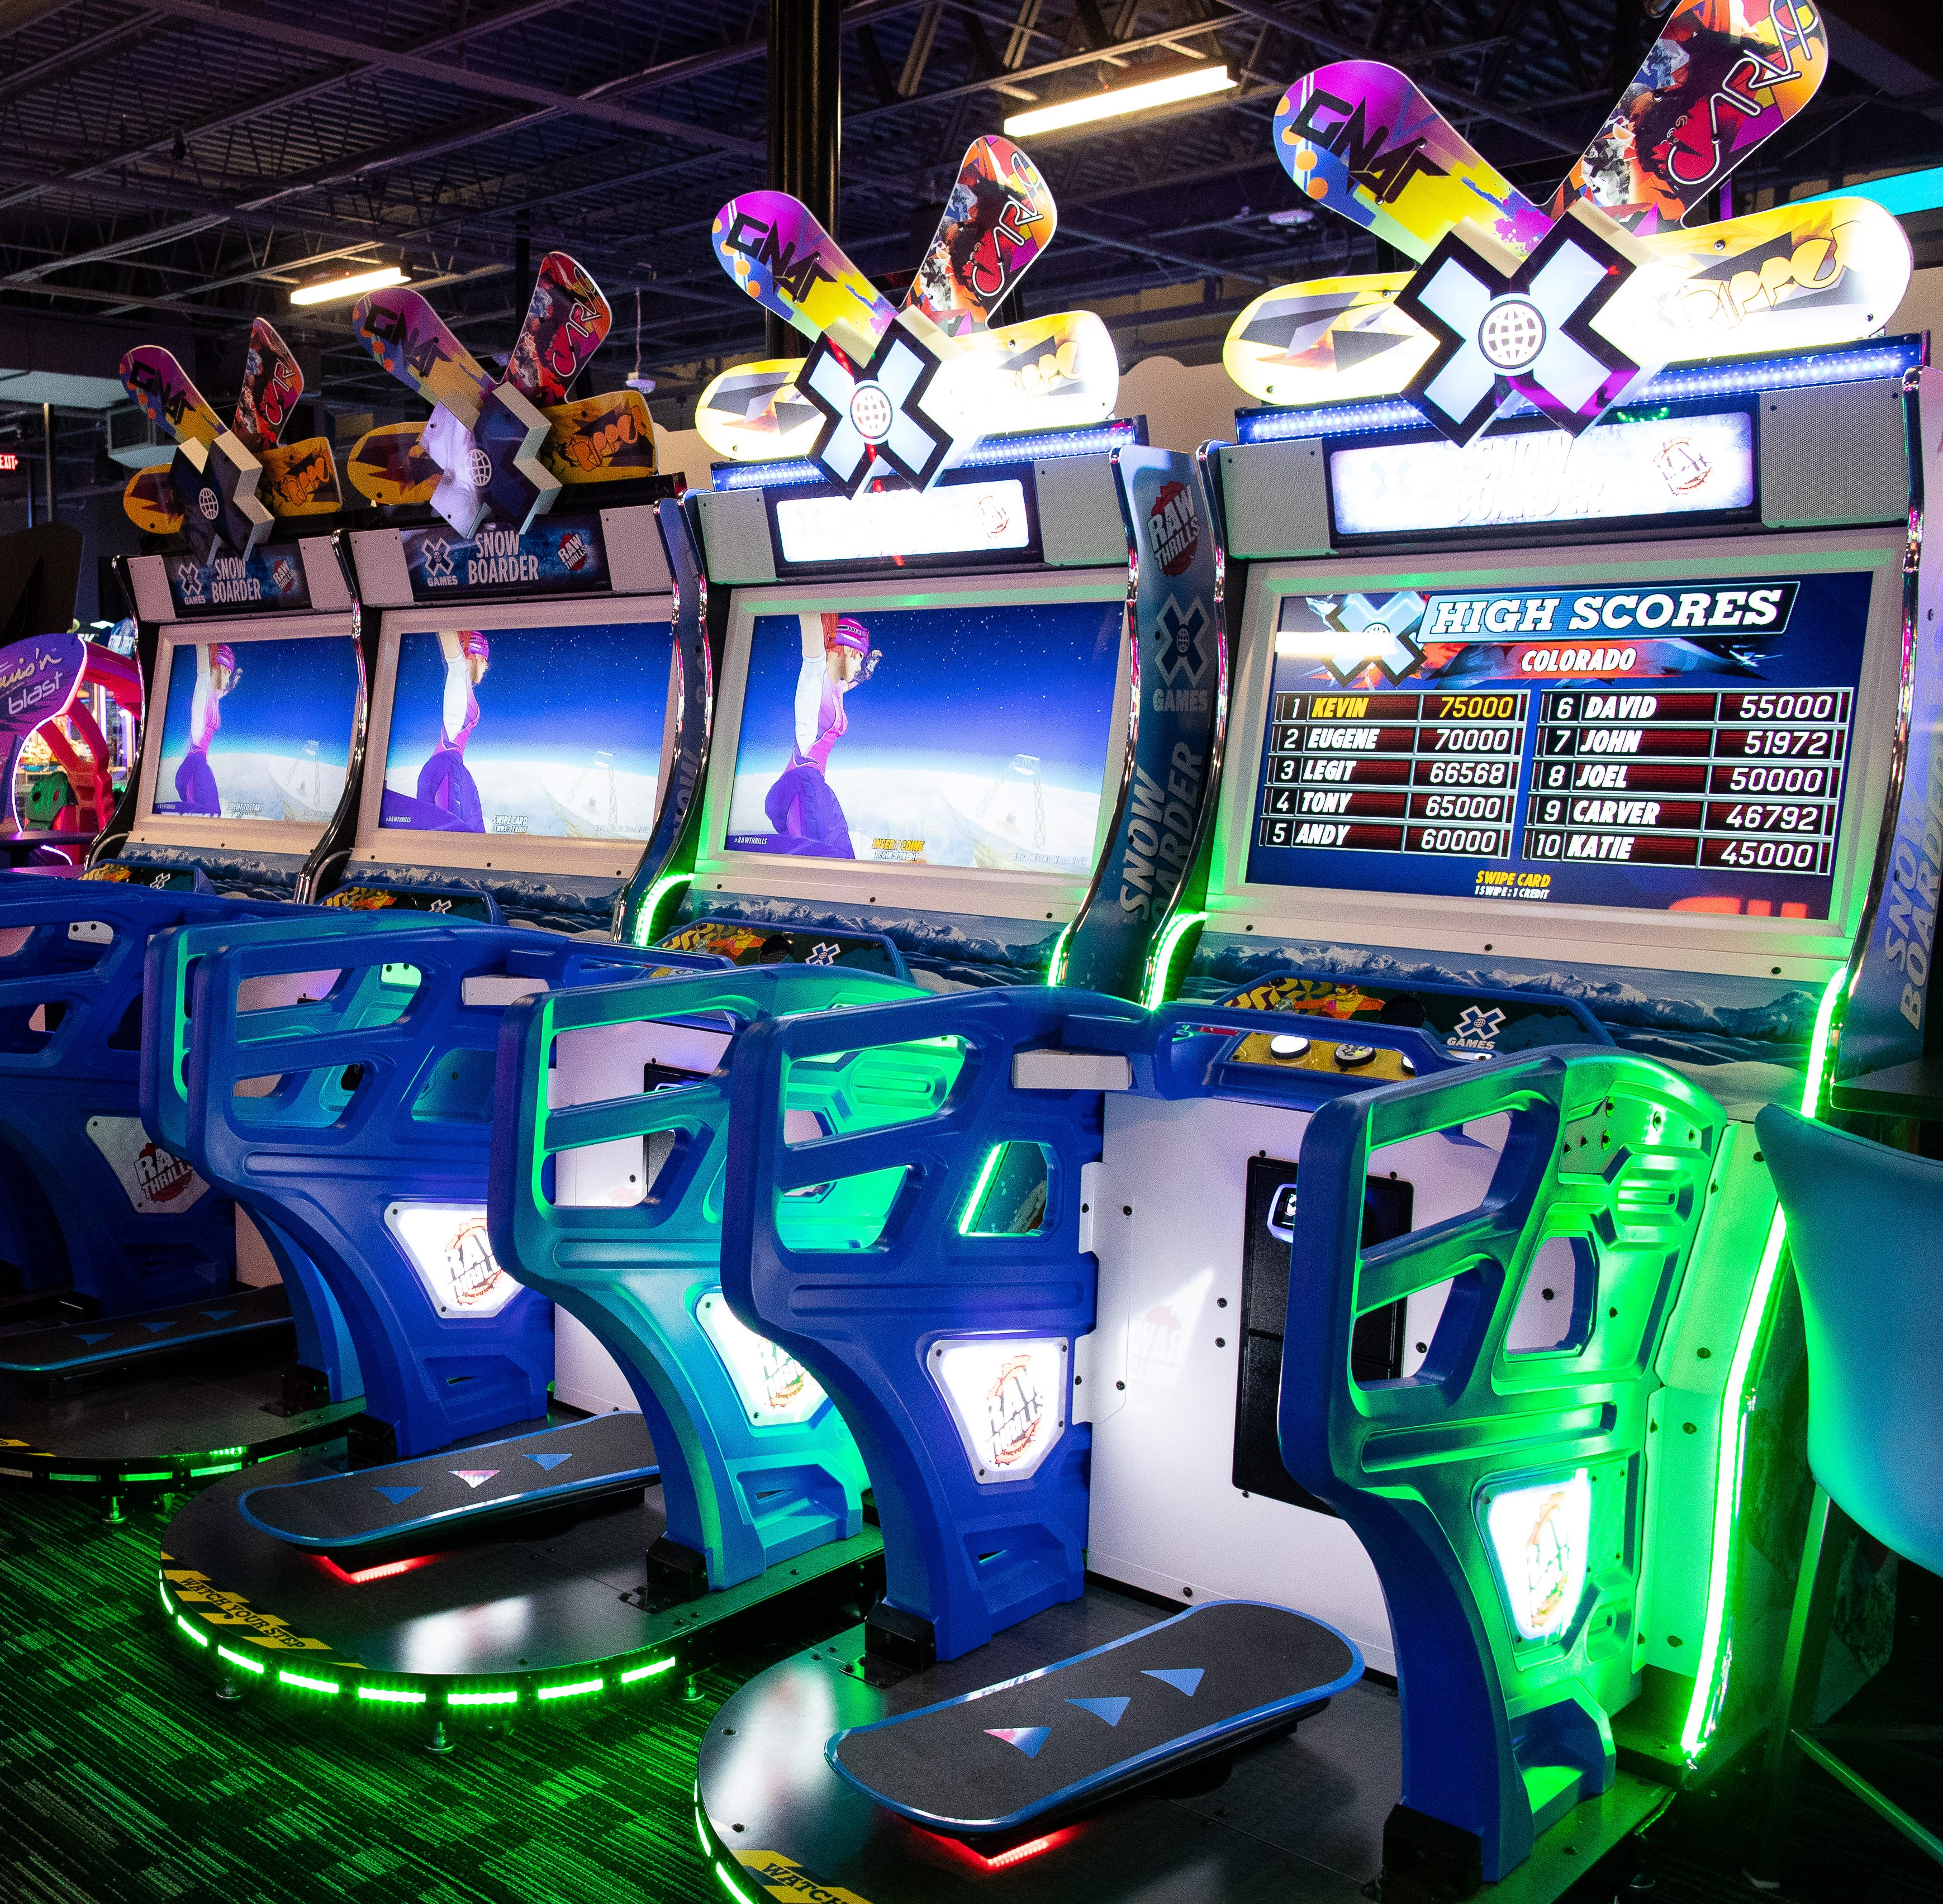 Get an exclusive sneak peek of the Dave & Buster's in Corpus Christi